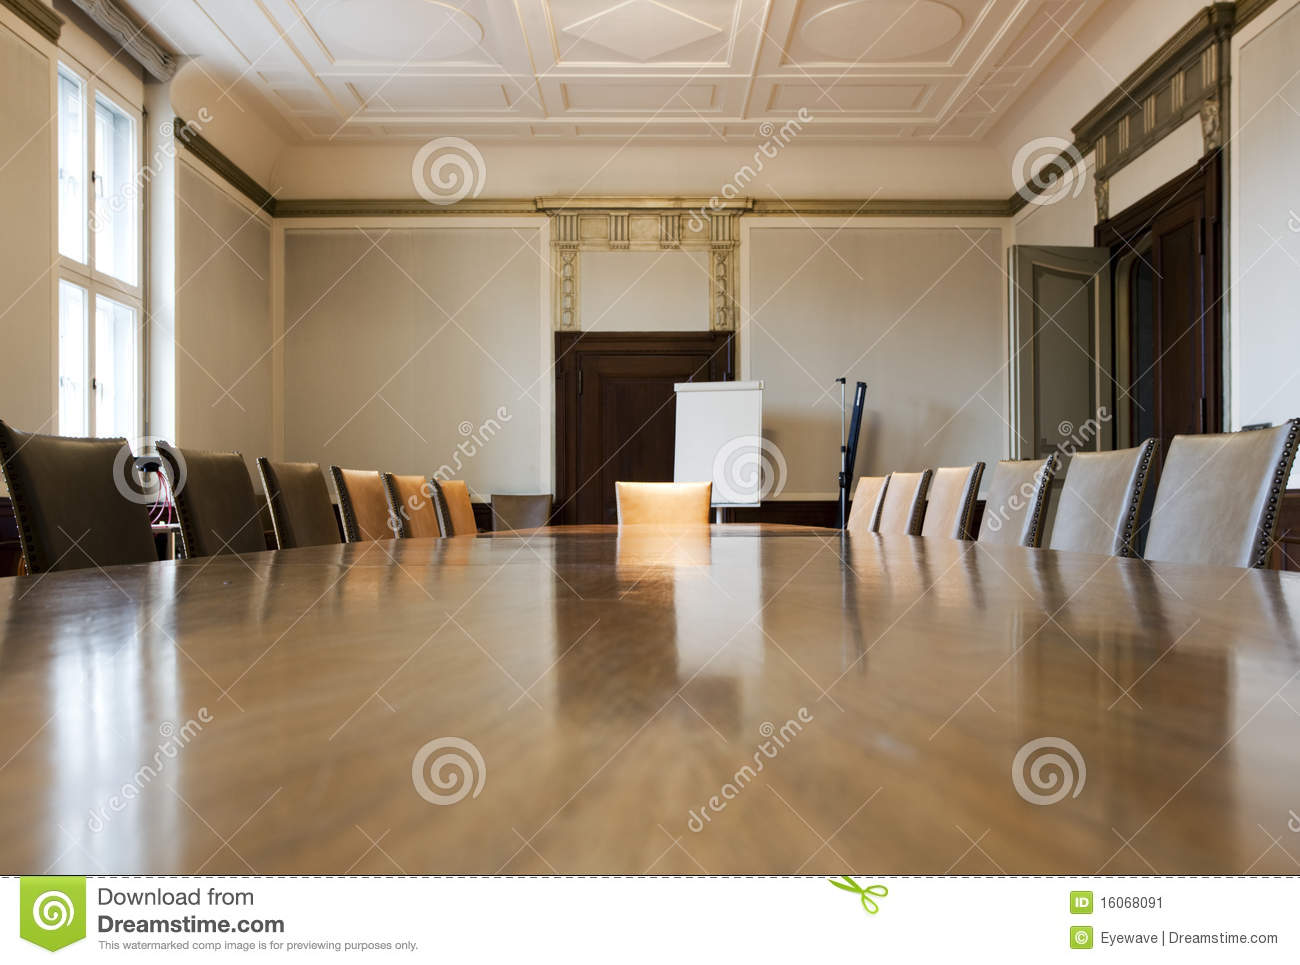 Old Fashioned Conference Room Stock Image Image Of Seats Meeting - Old conference table